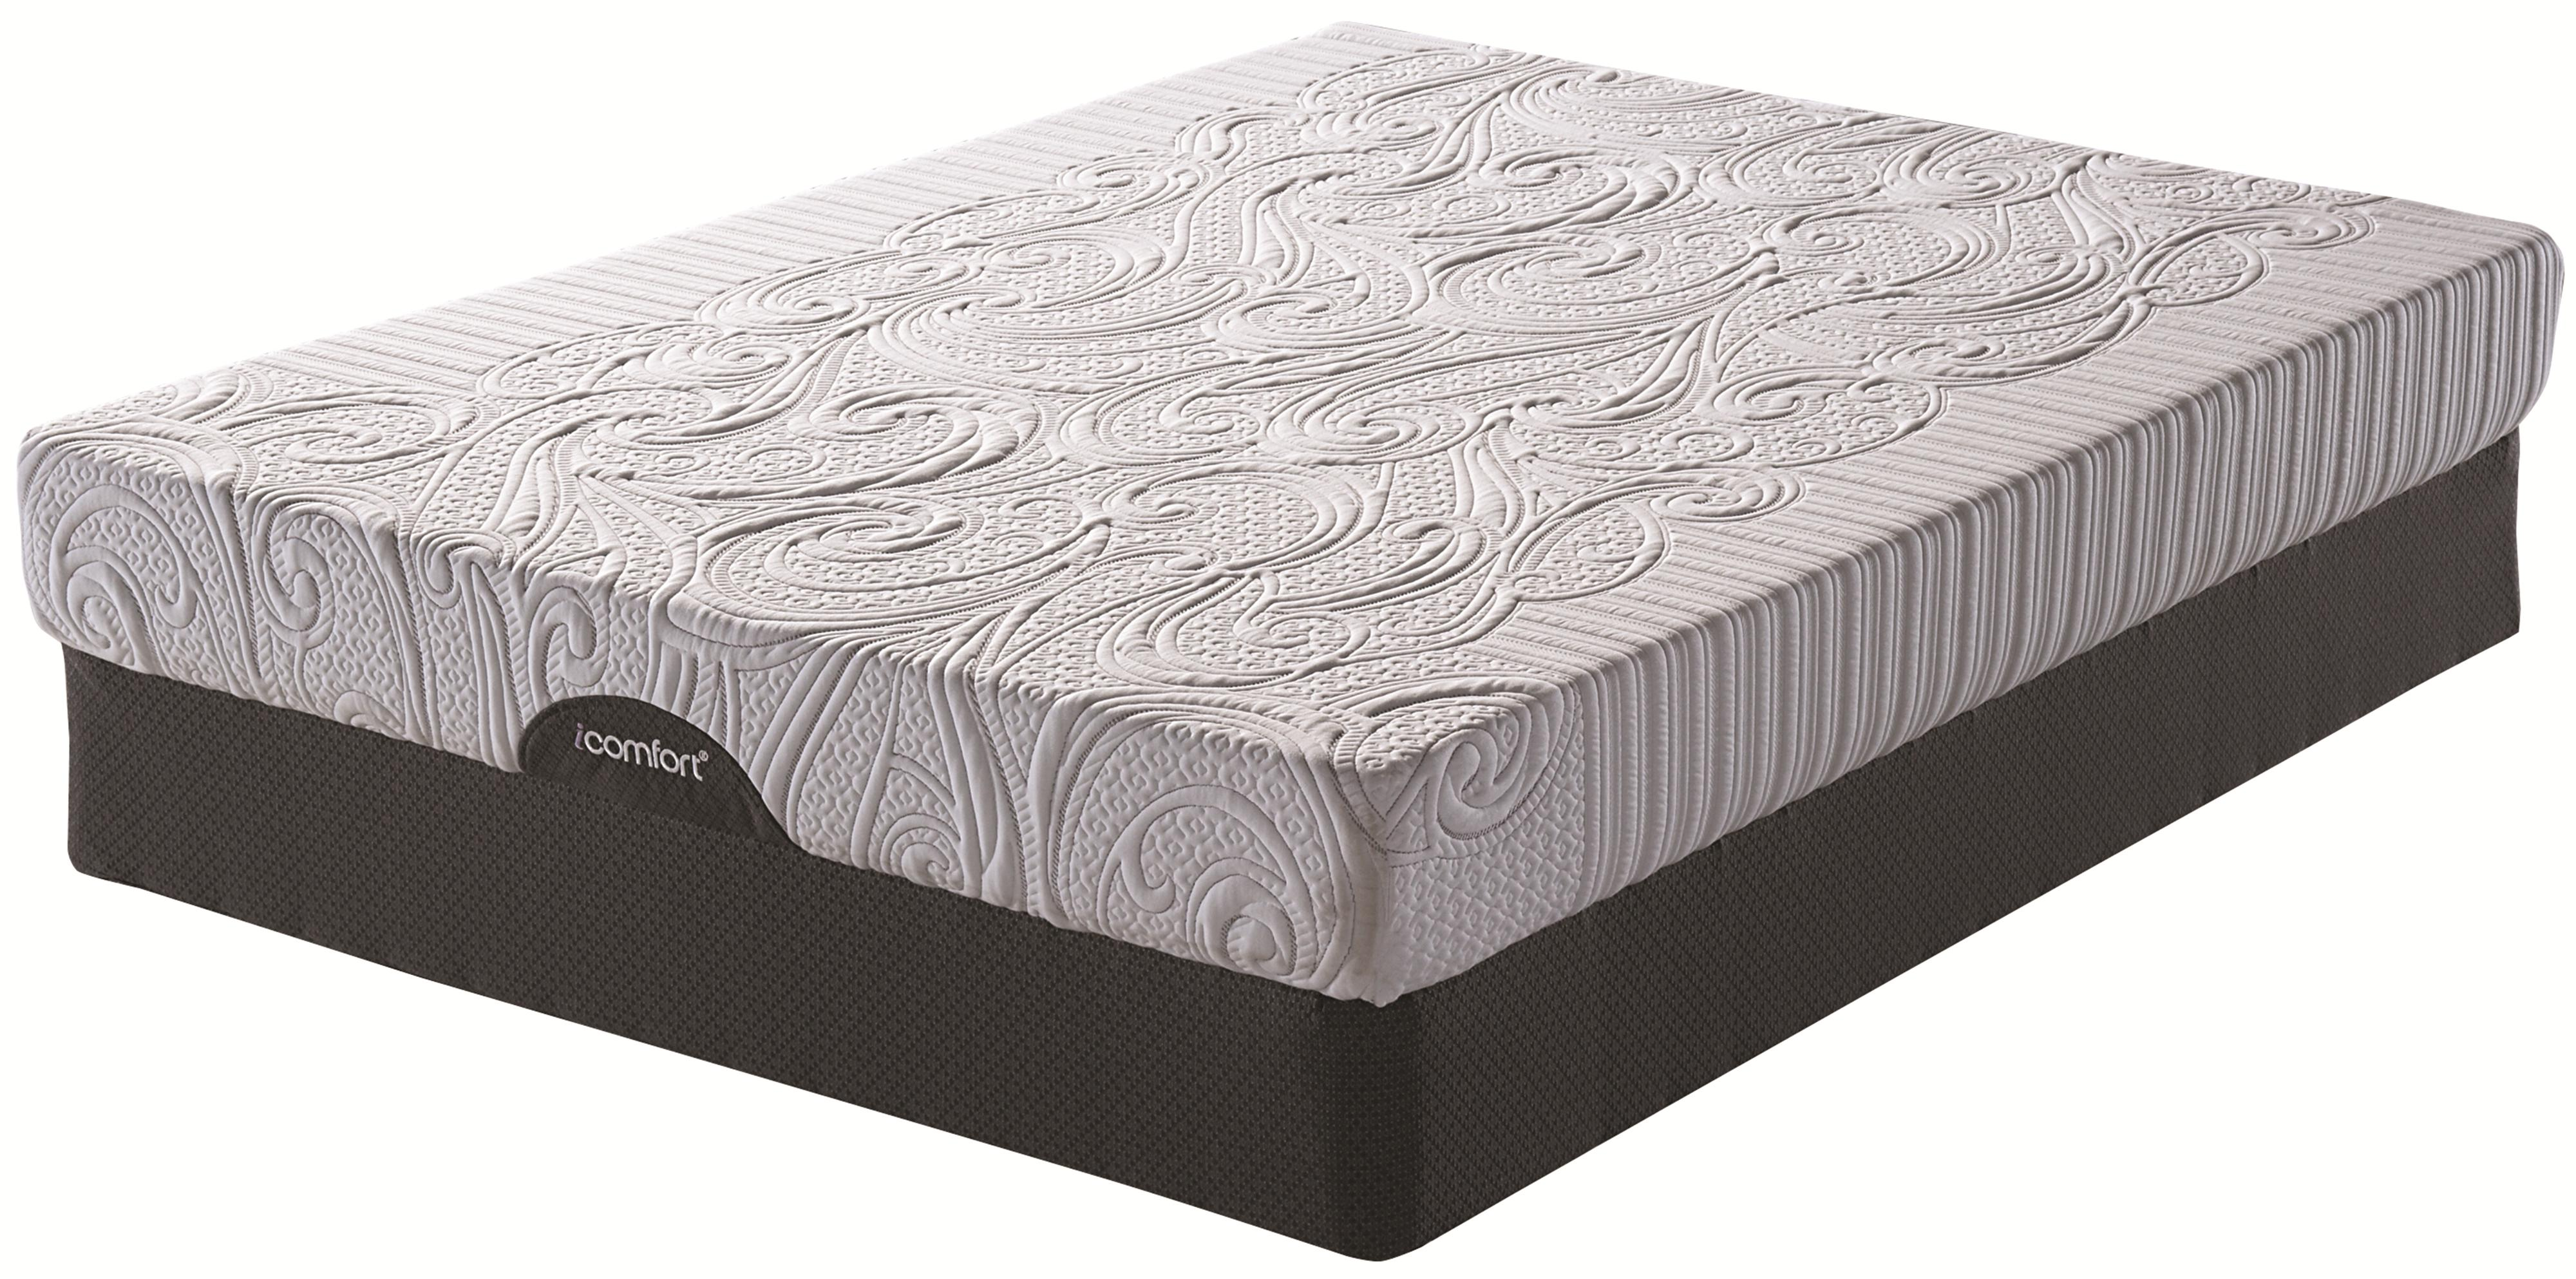 Serta iComfort Insight EverFeel King Mattress and ADJ Base Set - Item Number: 824148K+2x822019TXL